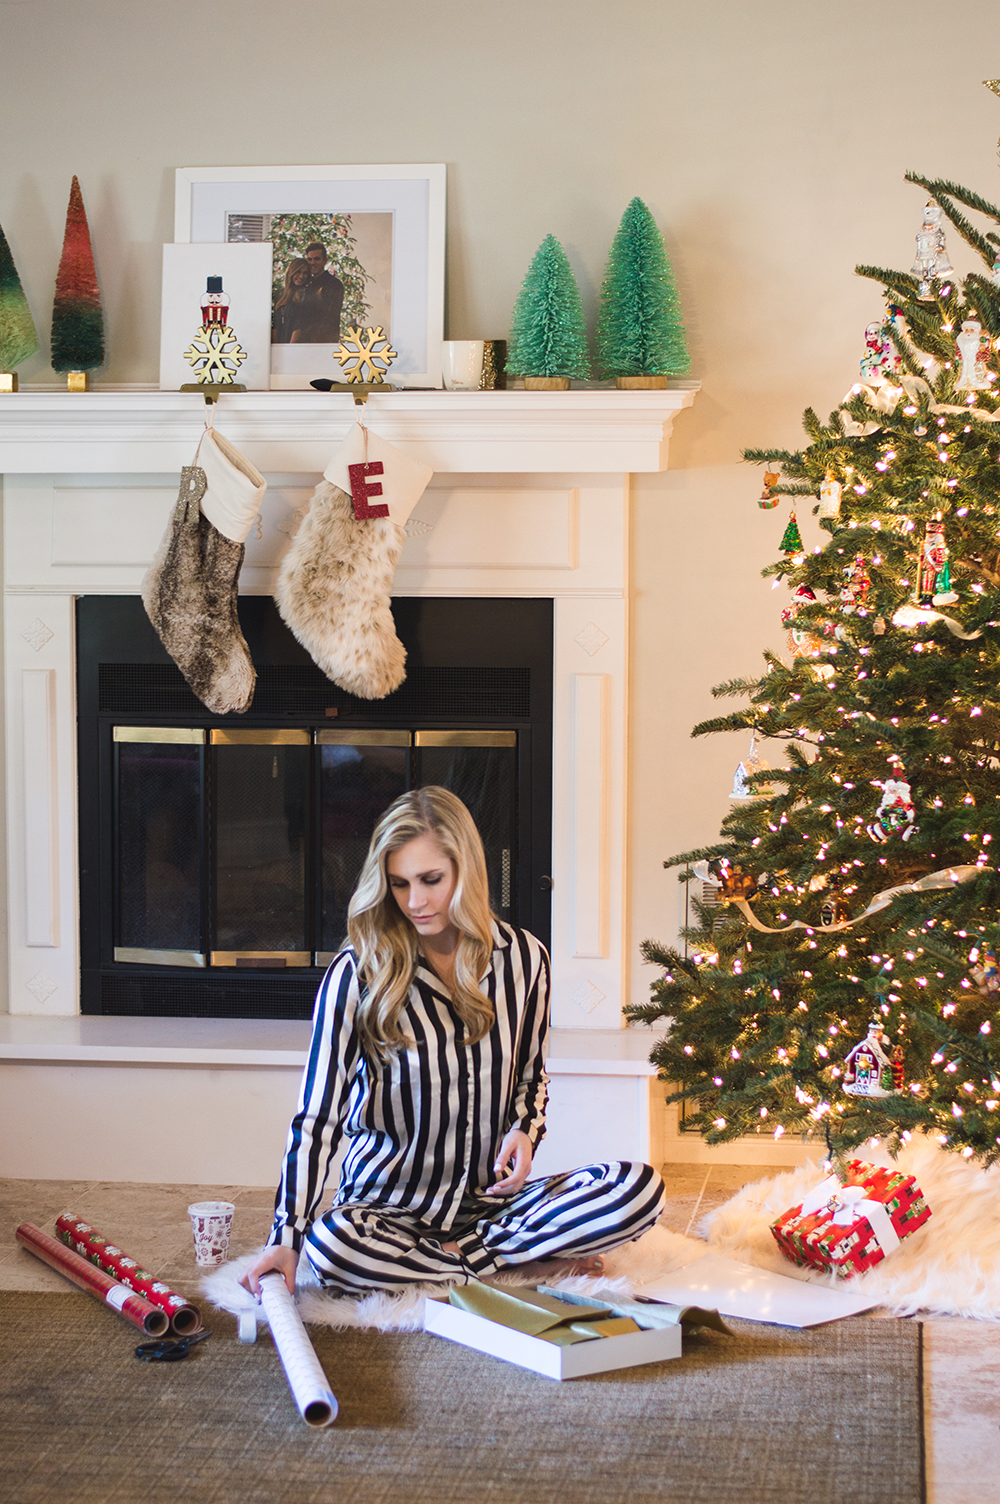 styelled-blog-fashion-blogger-style-wrapping-target-paper-christmas-gift-wrap-bows-glitter-nutcracker-tree-ornaments-stockings-pajamas-boohoo-tutorial-diy-01